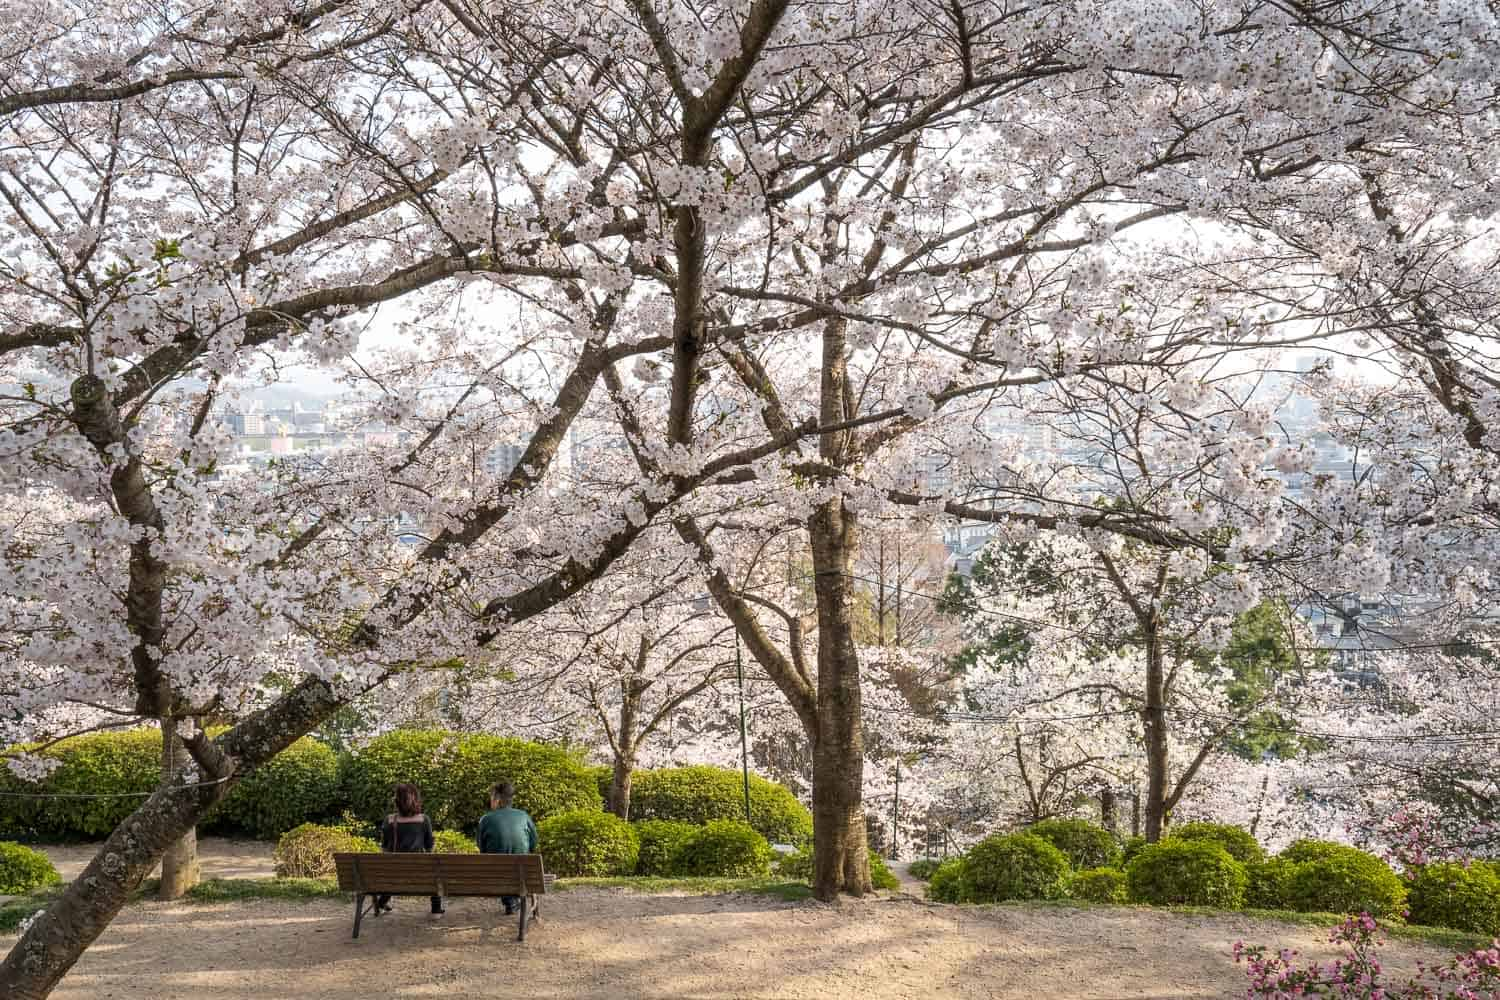 Cherry blossoms at Handayama Botanical Garden, one of the best things to do in Okayama Japan